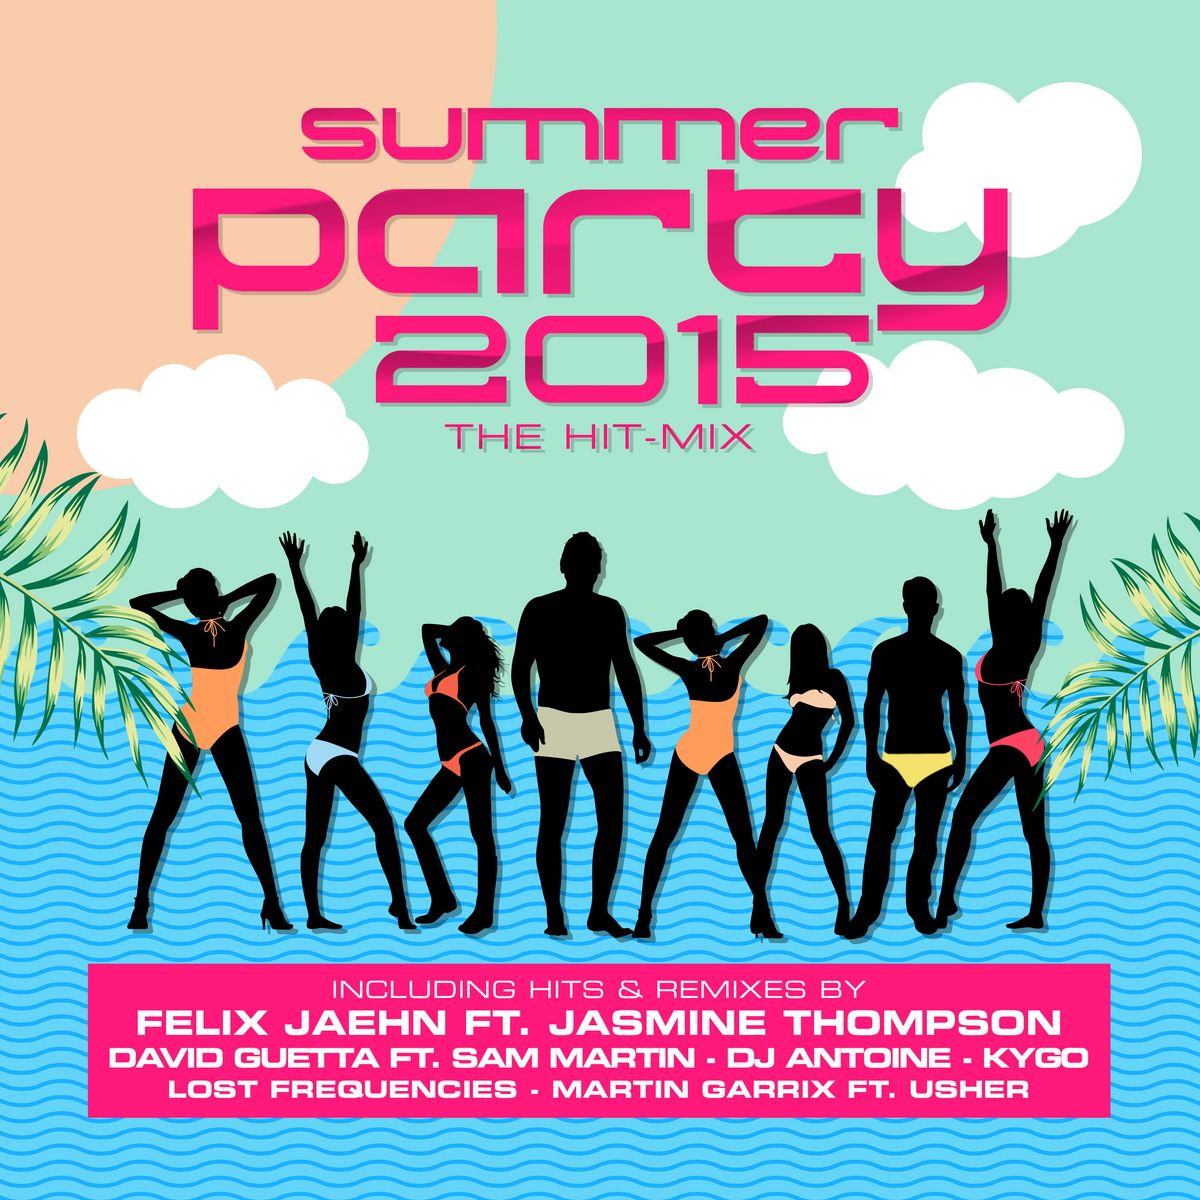 ultratop be - Summer Party 2015 - The Hit-Mix